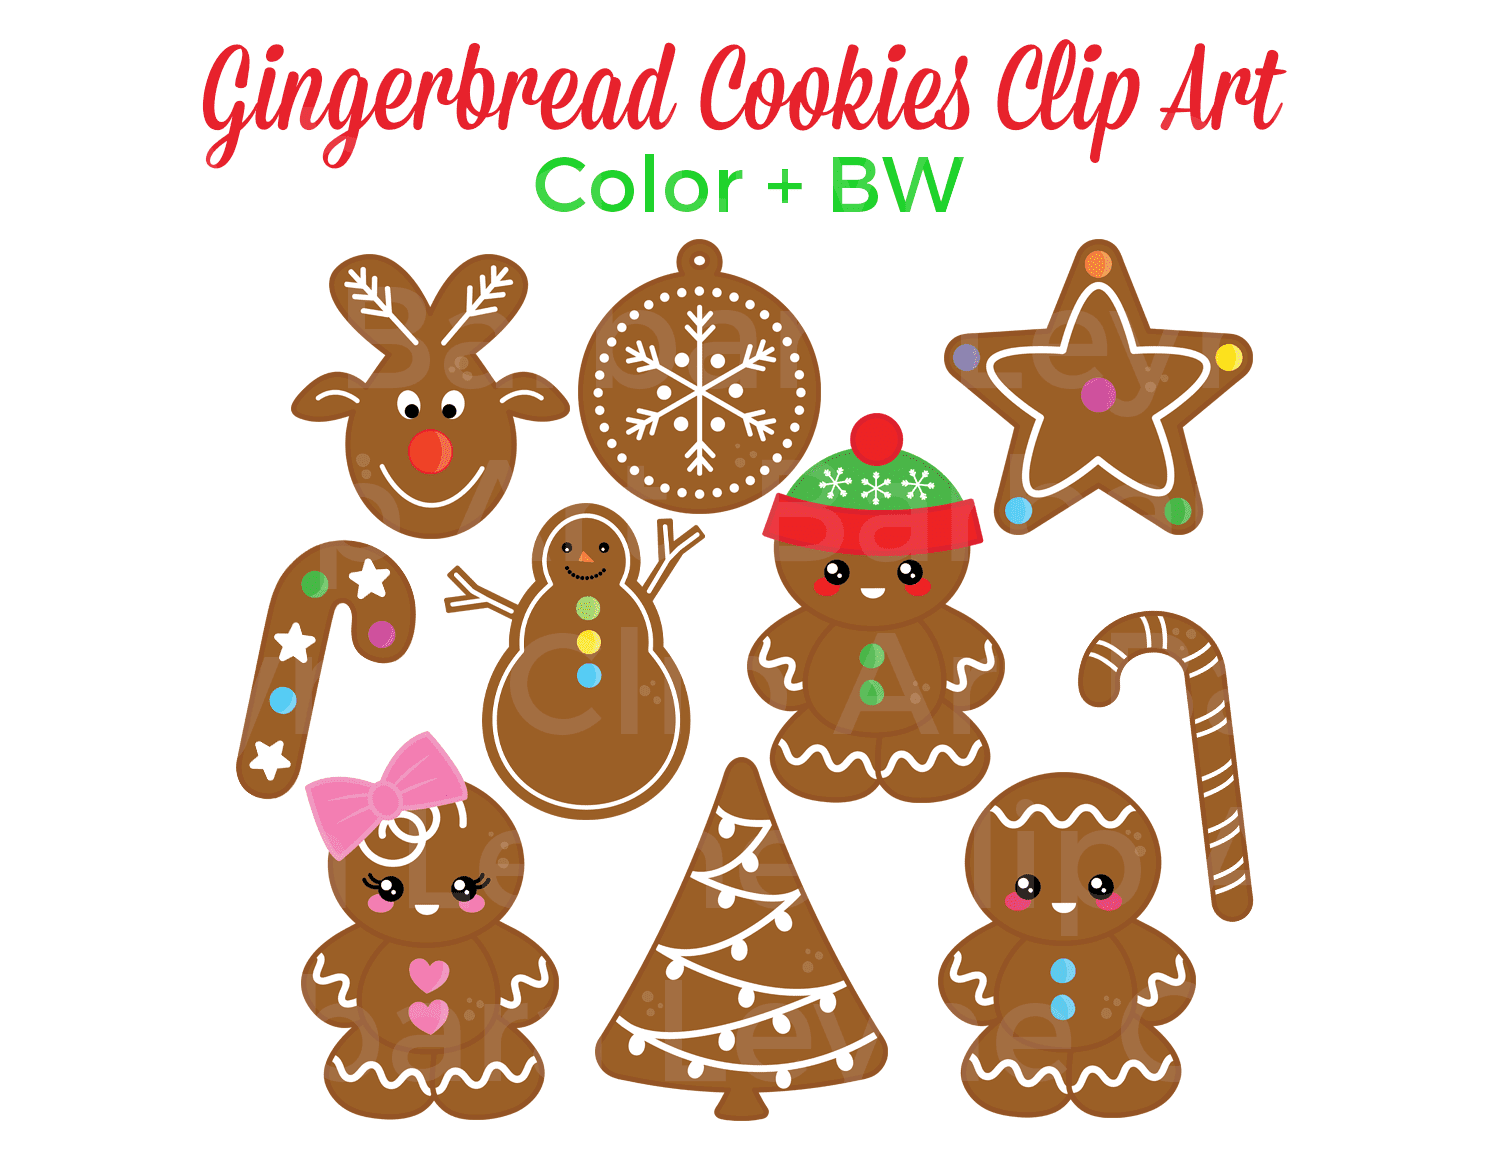 Super sweet gingerbread cookies clip art. Only $3 on TpT and Etsy. There are 10 colour and 10 bw images plus a bonus girl! #christmas #clipart #christmasclipart #gingerbread